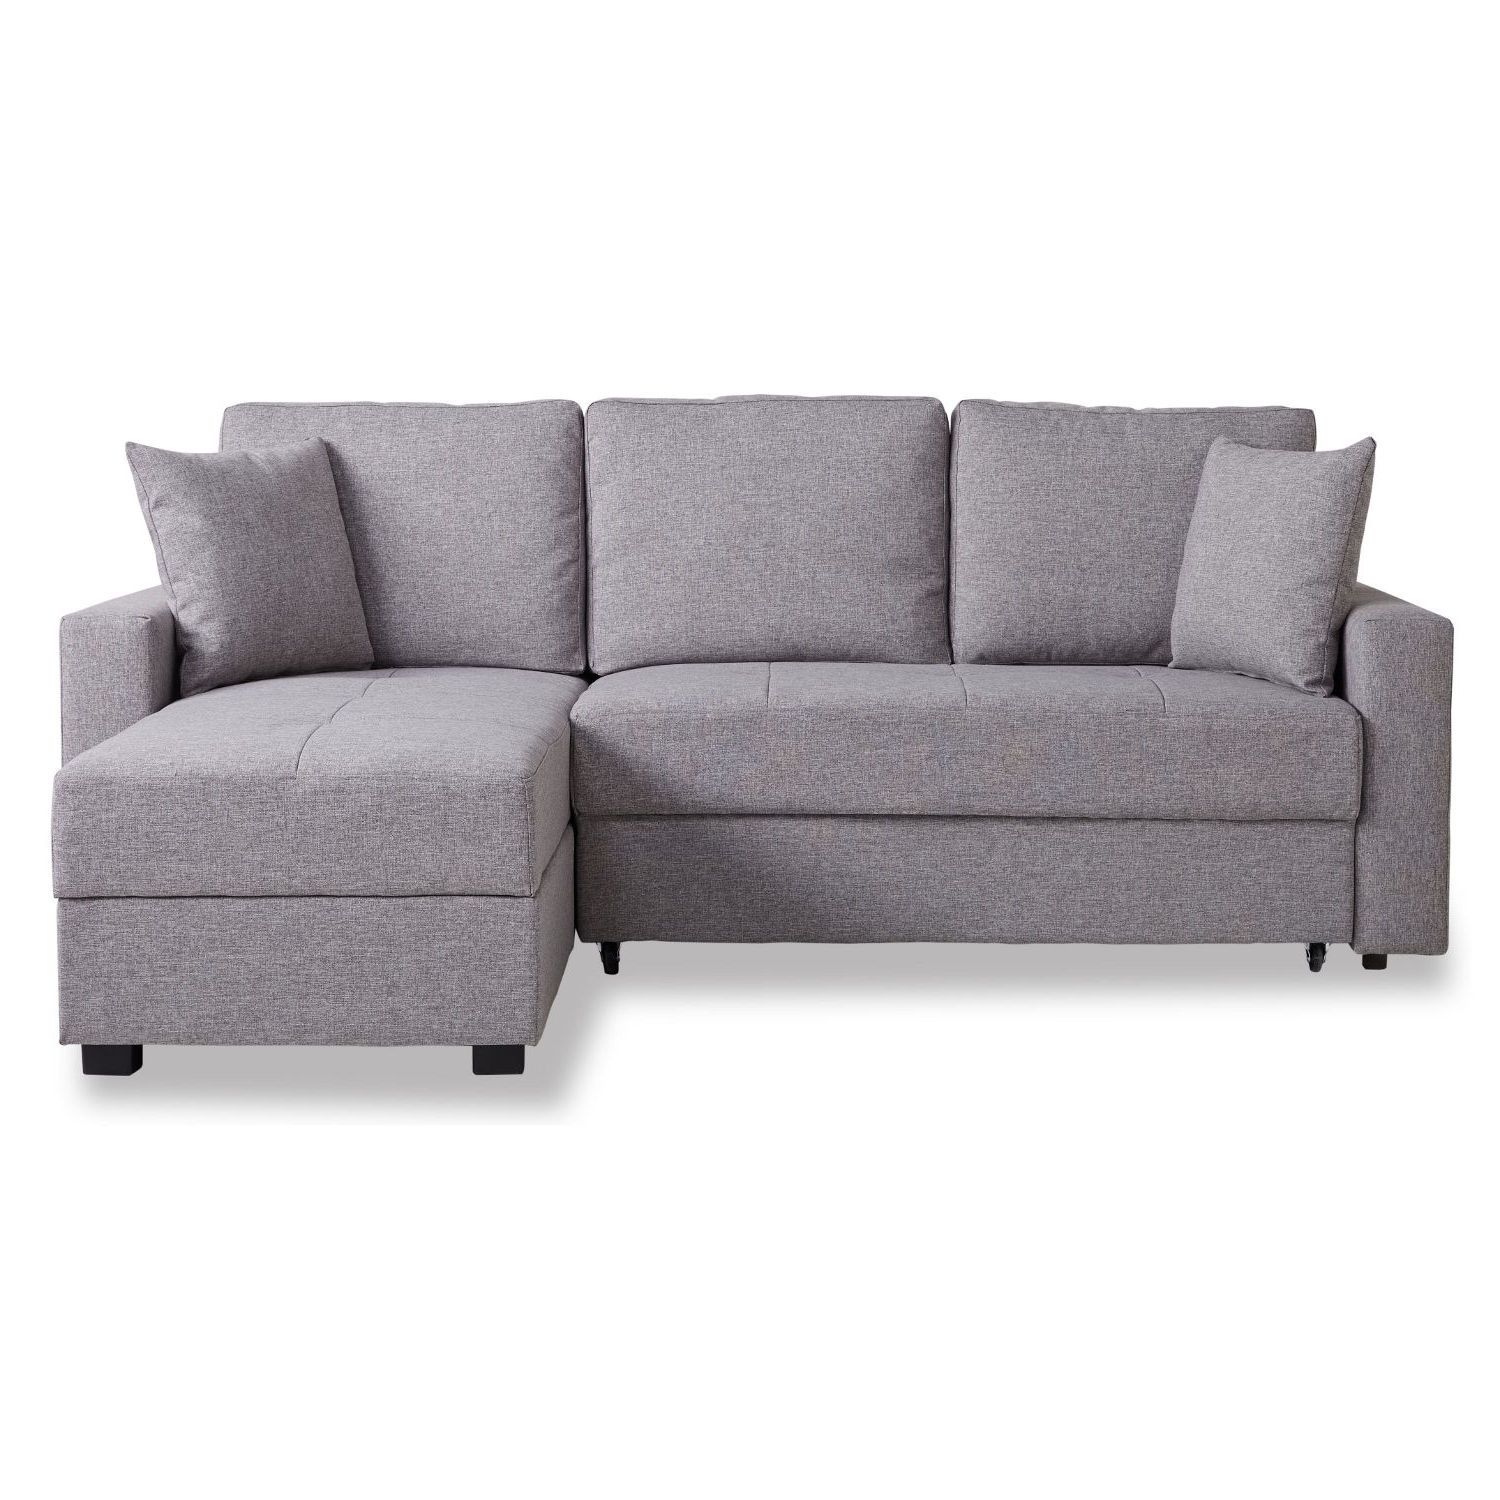 Platform Sofa Sectional For Apartment Bed Modern Sleeper Sofas Room Board Thesofa